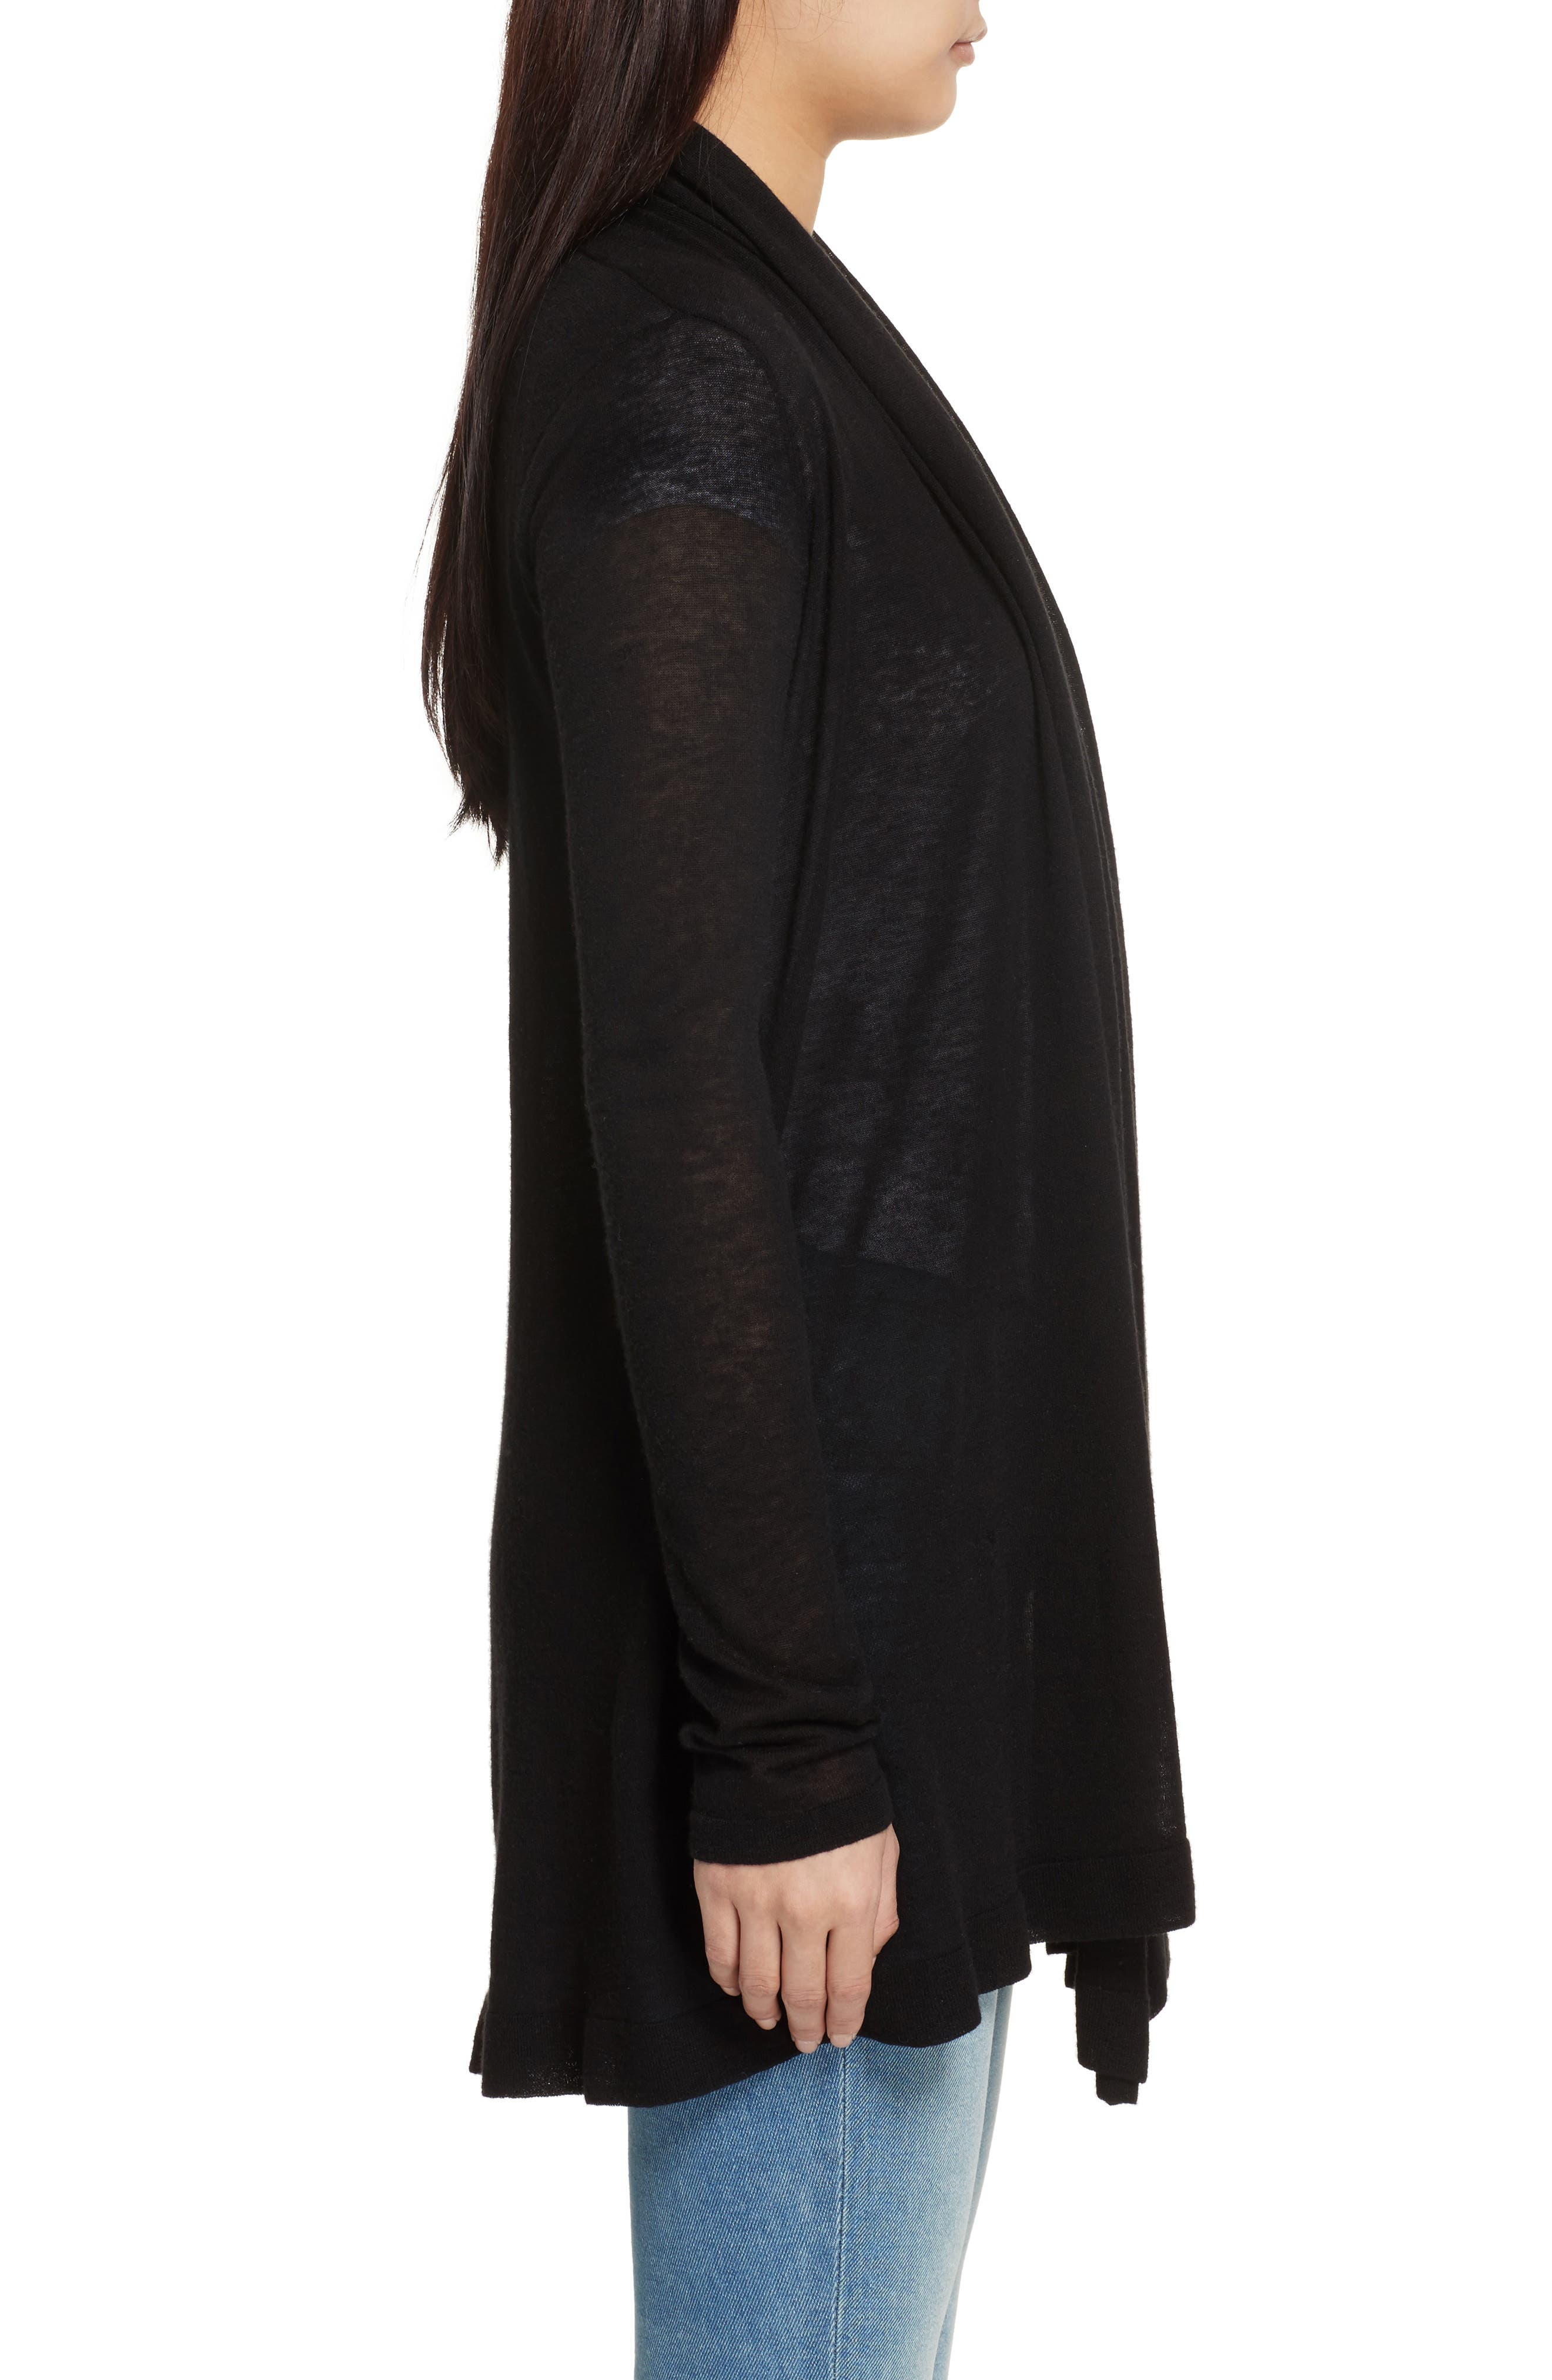 THEORY,                             Featherweight Cashmere Cardigan,                             Alternate thumbnail 3, color,                             001